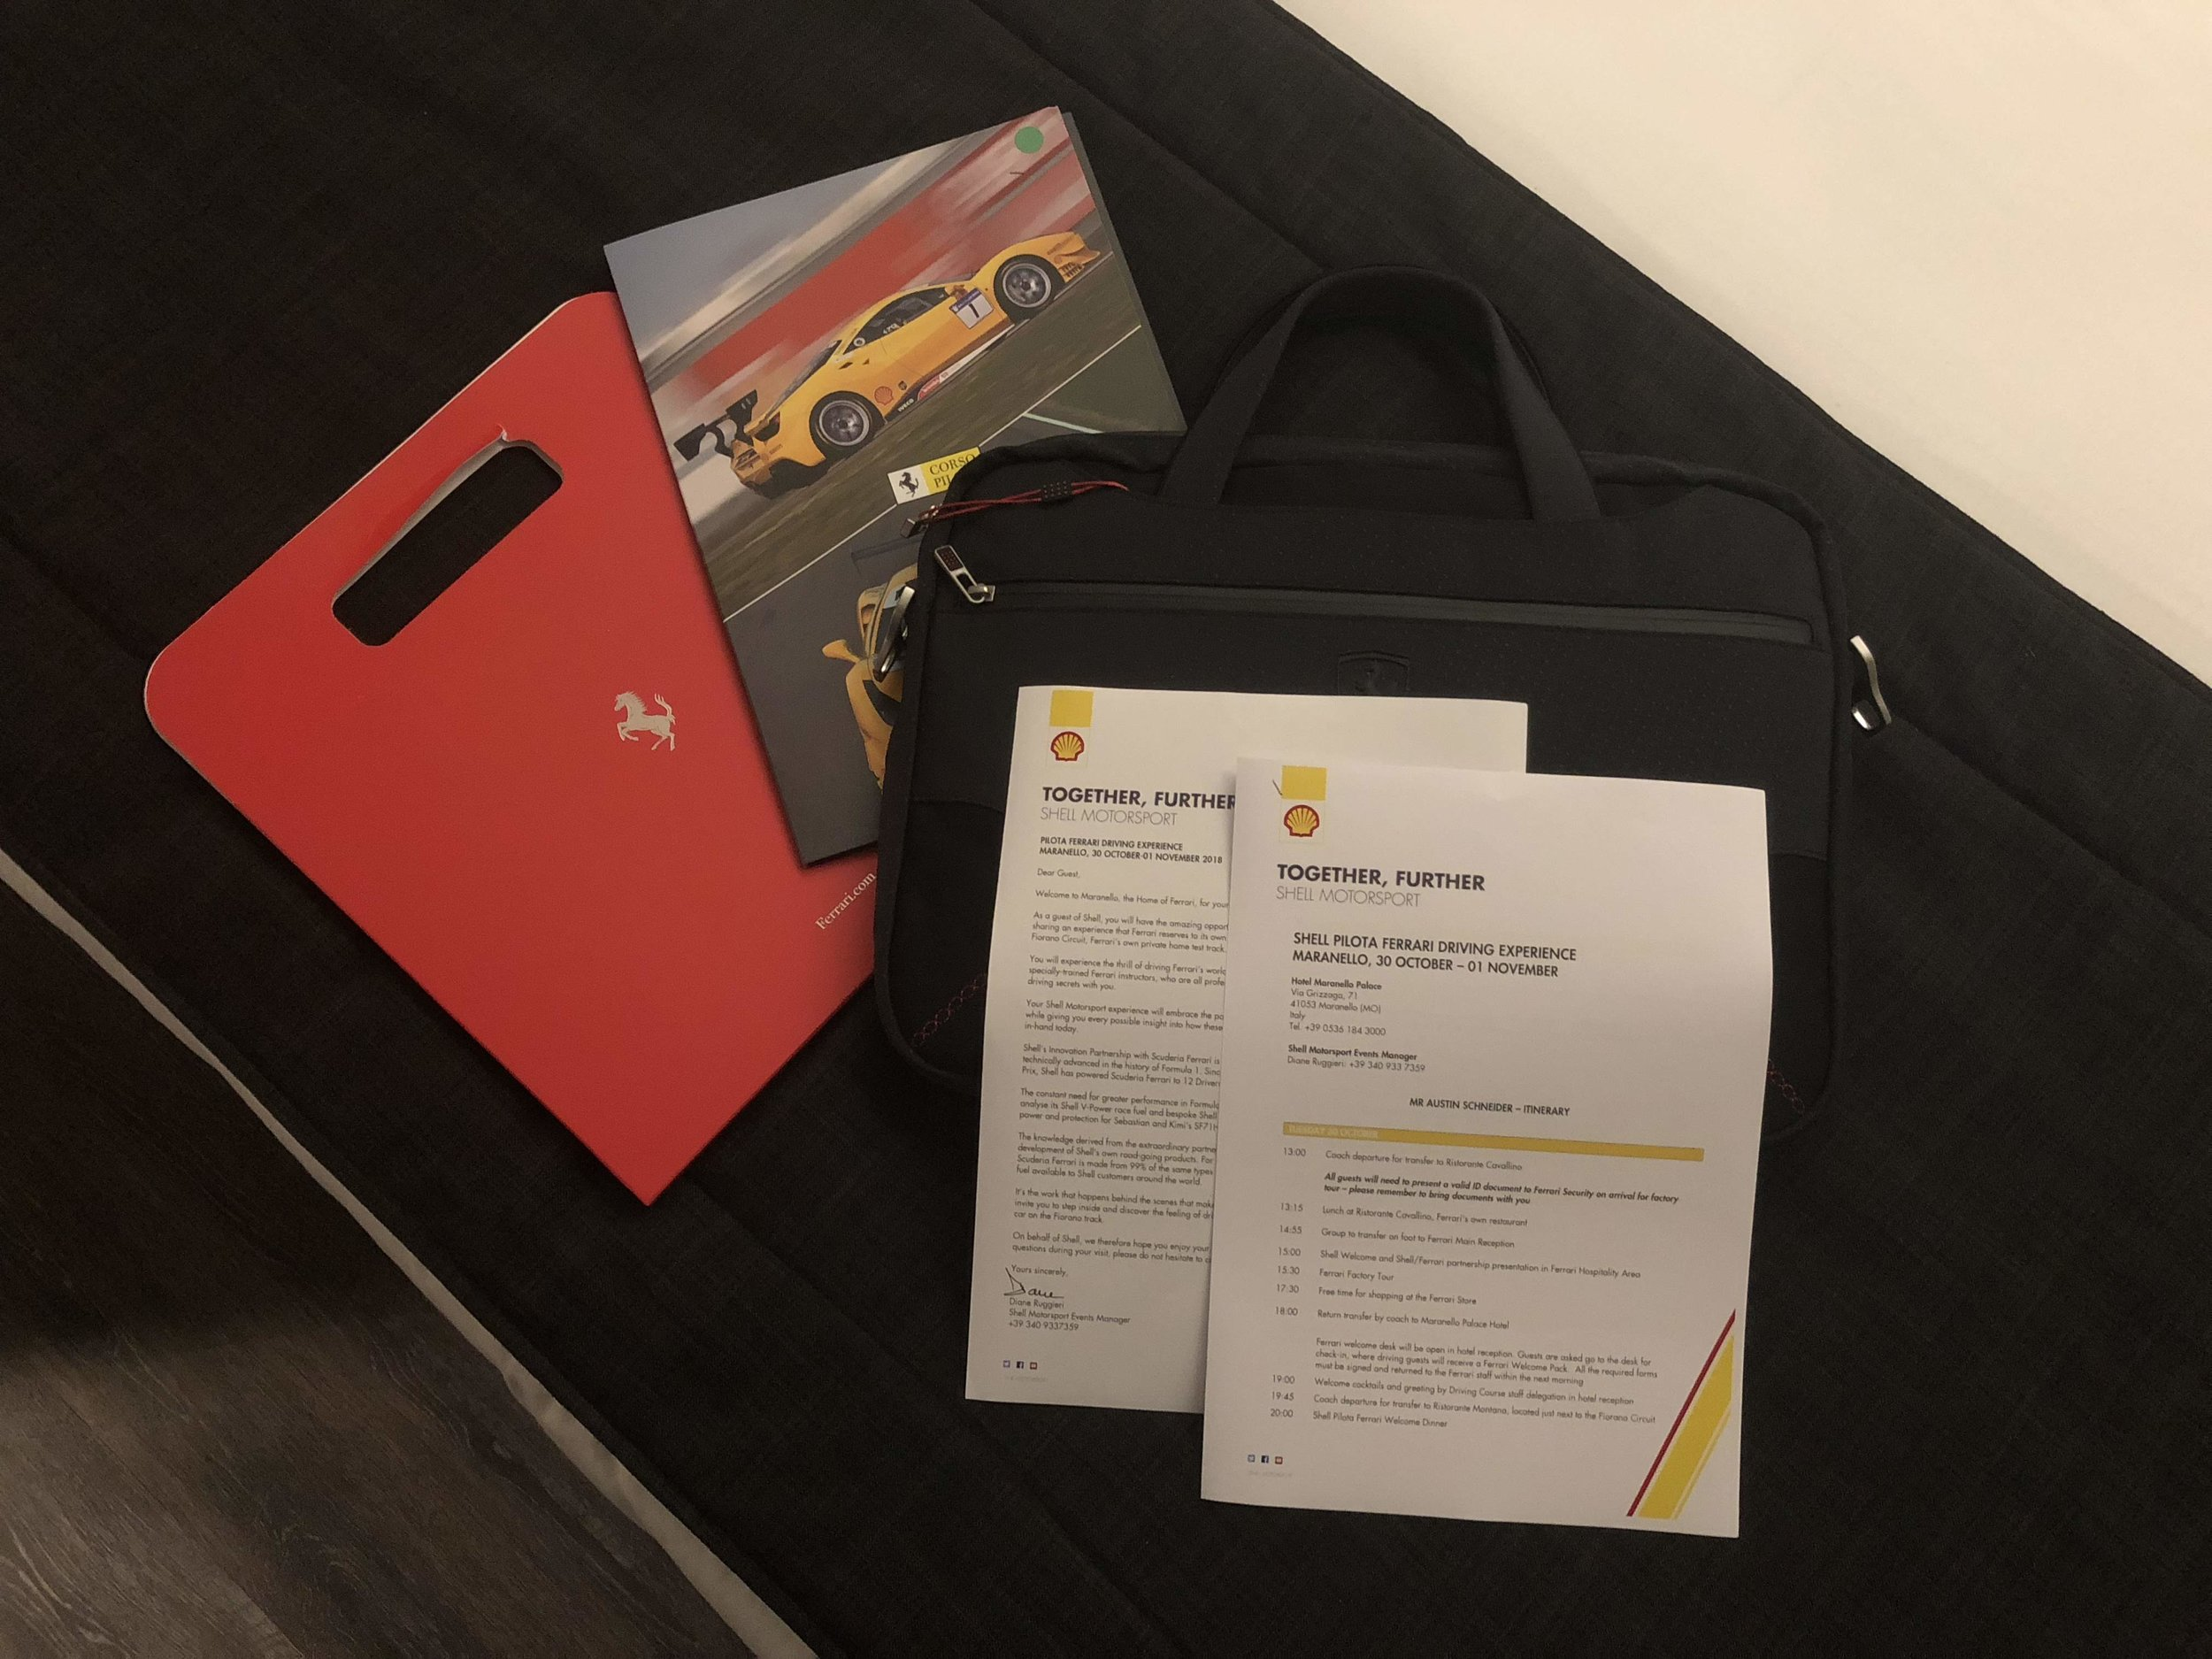 Shell welcome kit in Maranello.